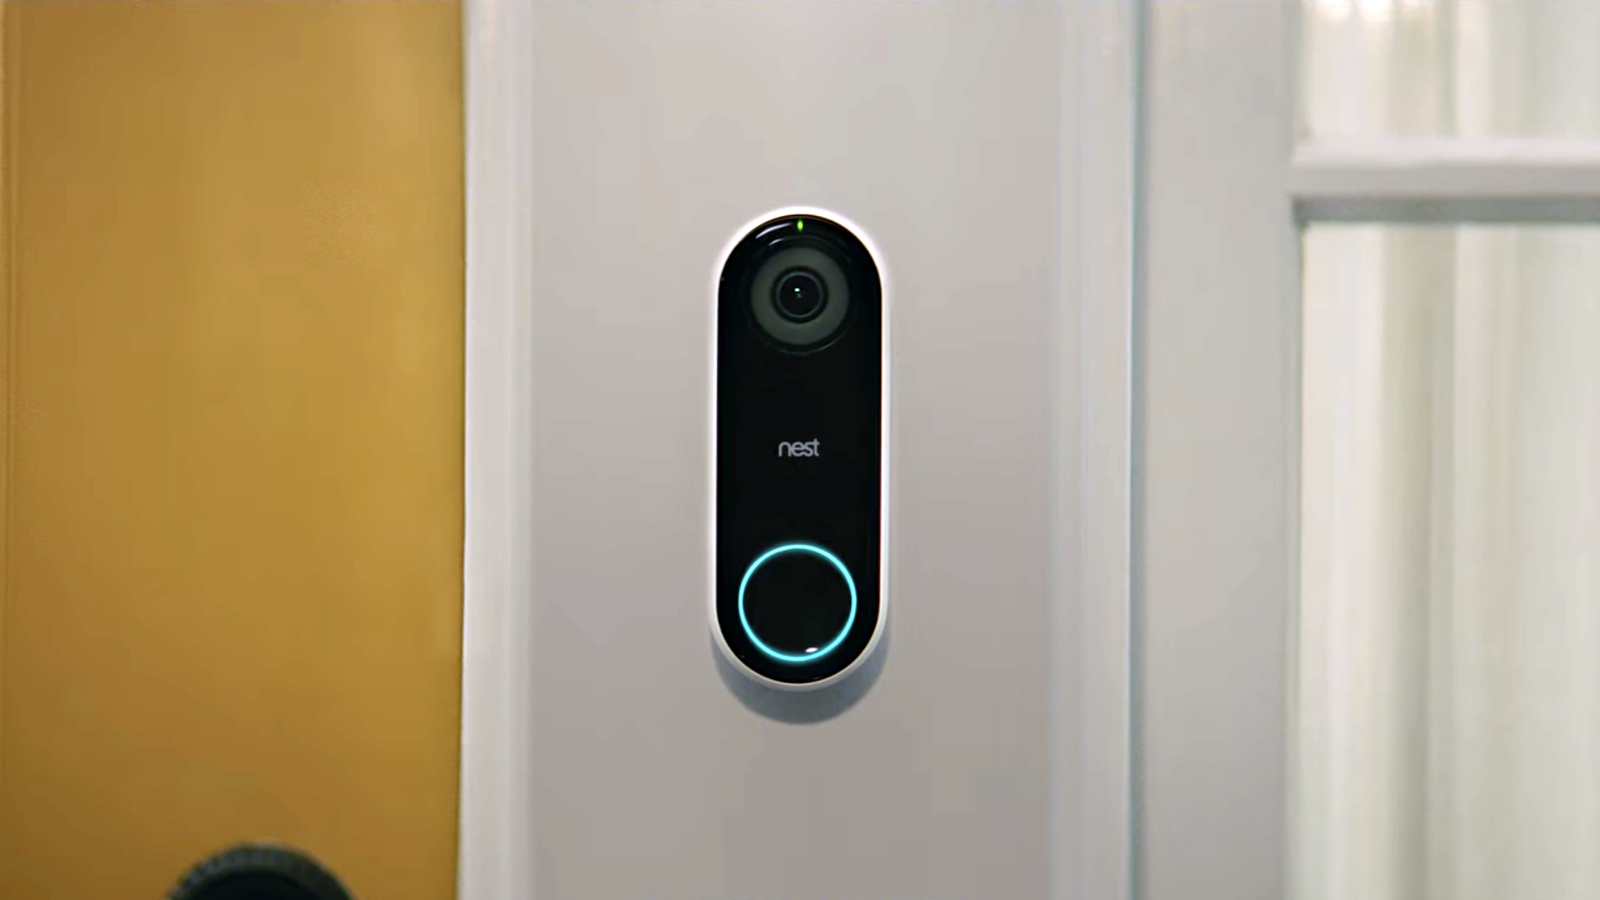 Don't Use a Nest Doorbell to Raise Your Kids